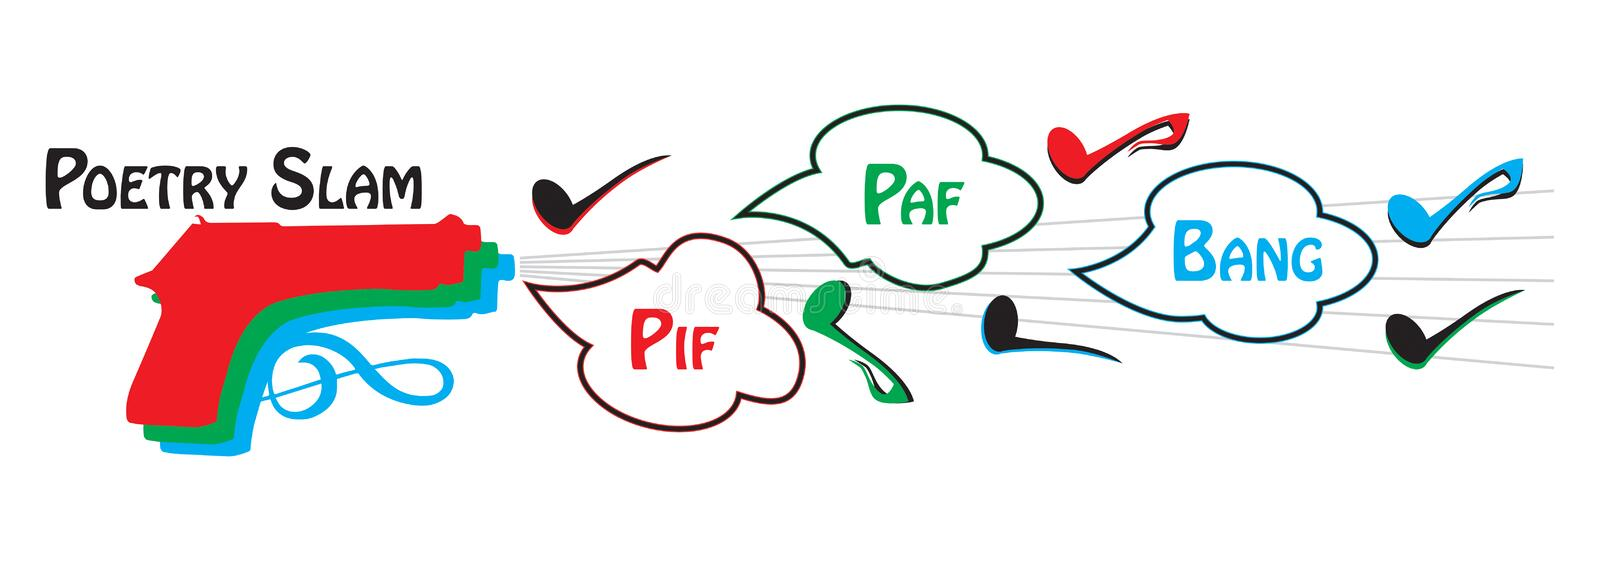 Poetry Slam - Pif Paf Bang. Poetry Slam - illustration of a competition where you can sing, recite or speak stock illustration